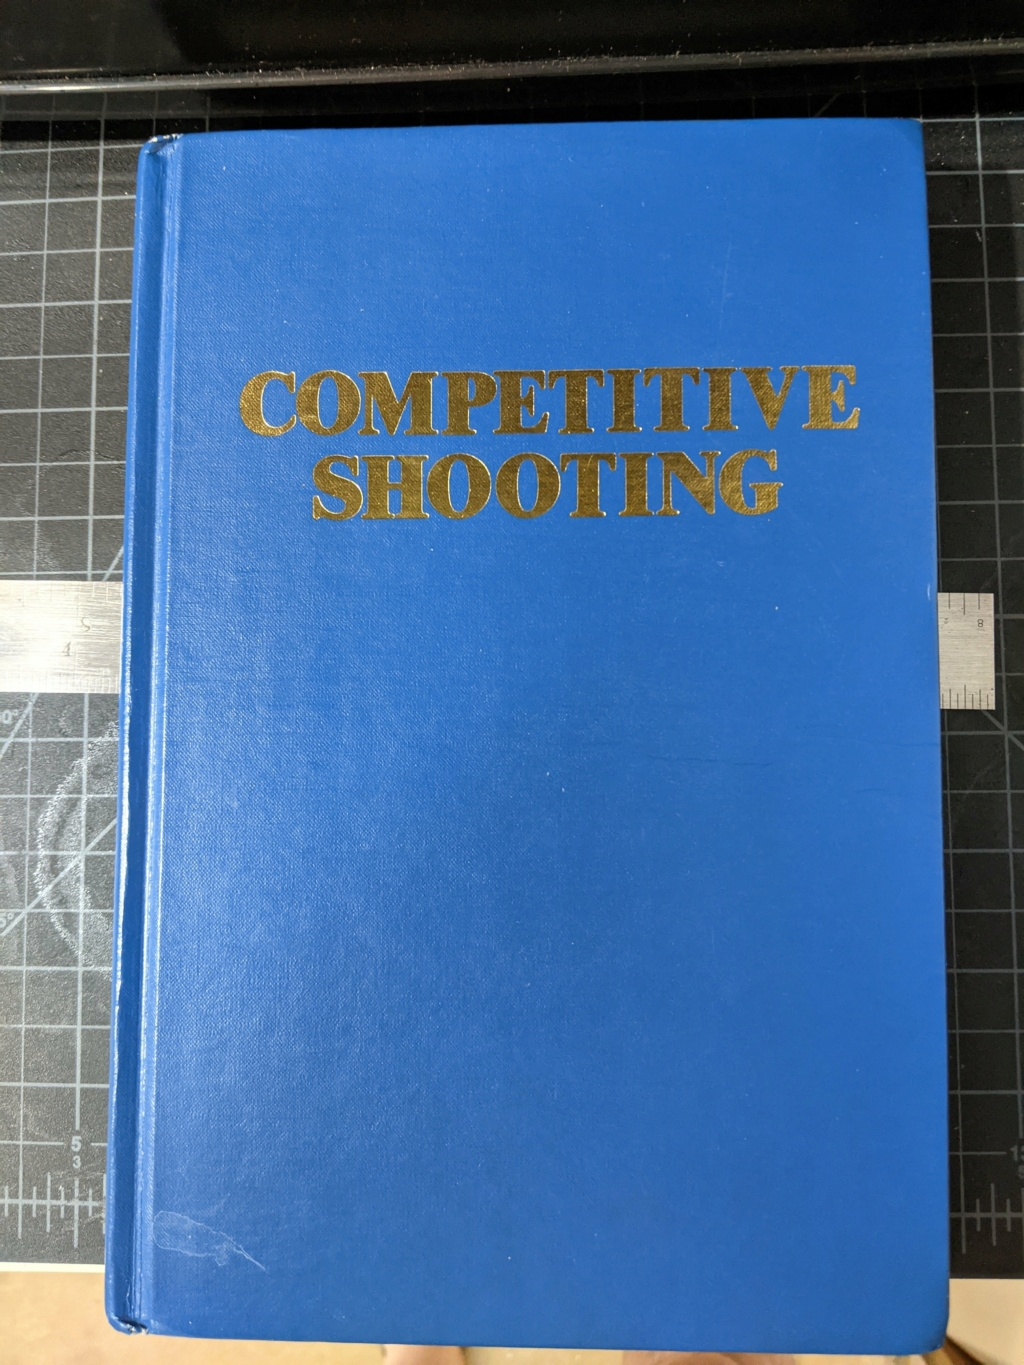 SPF! WTS: Competitive Shooting by A. A. Yur'yev Pxl_2026